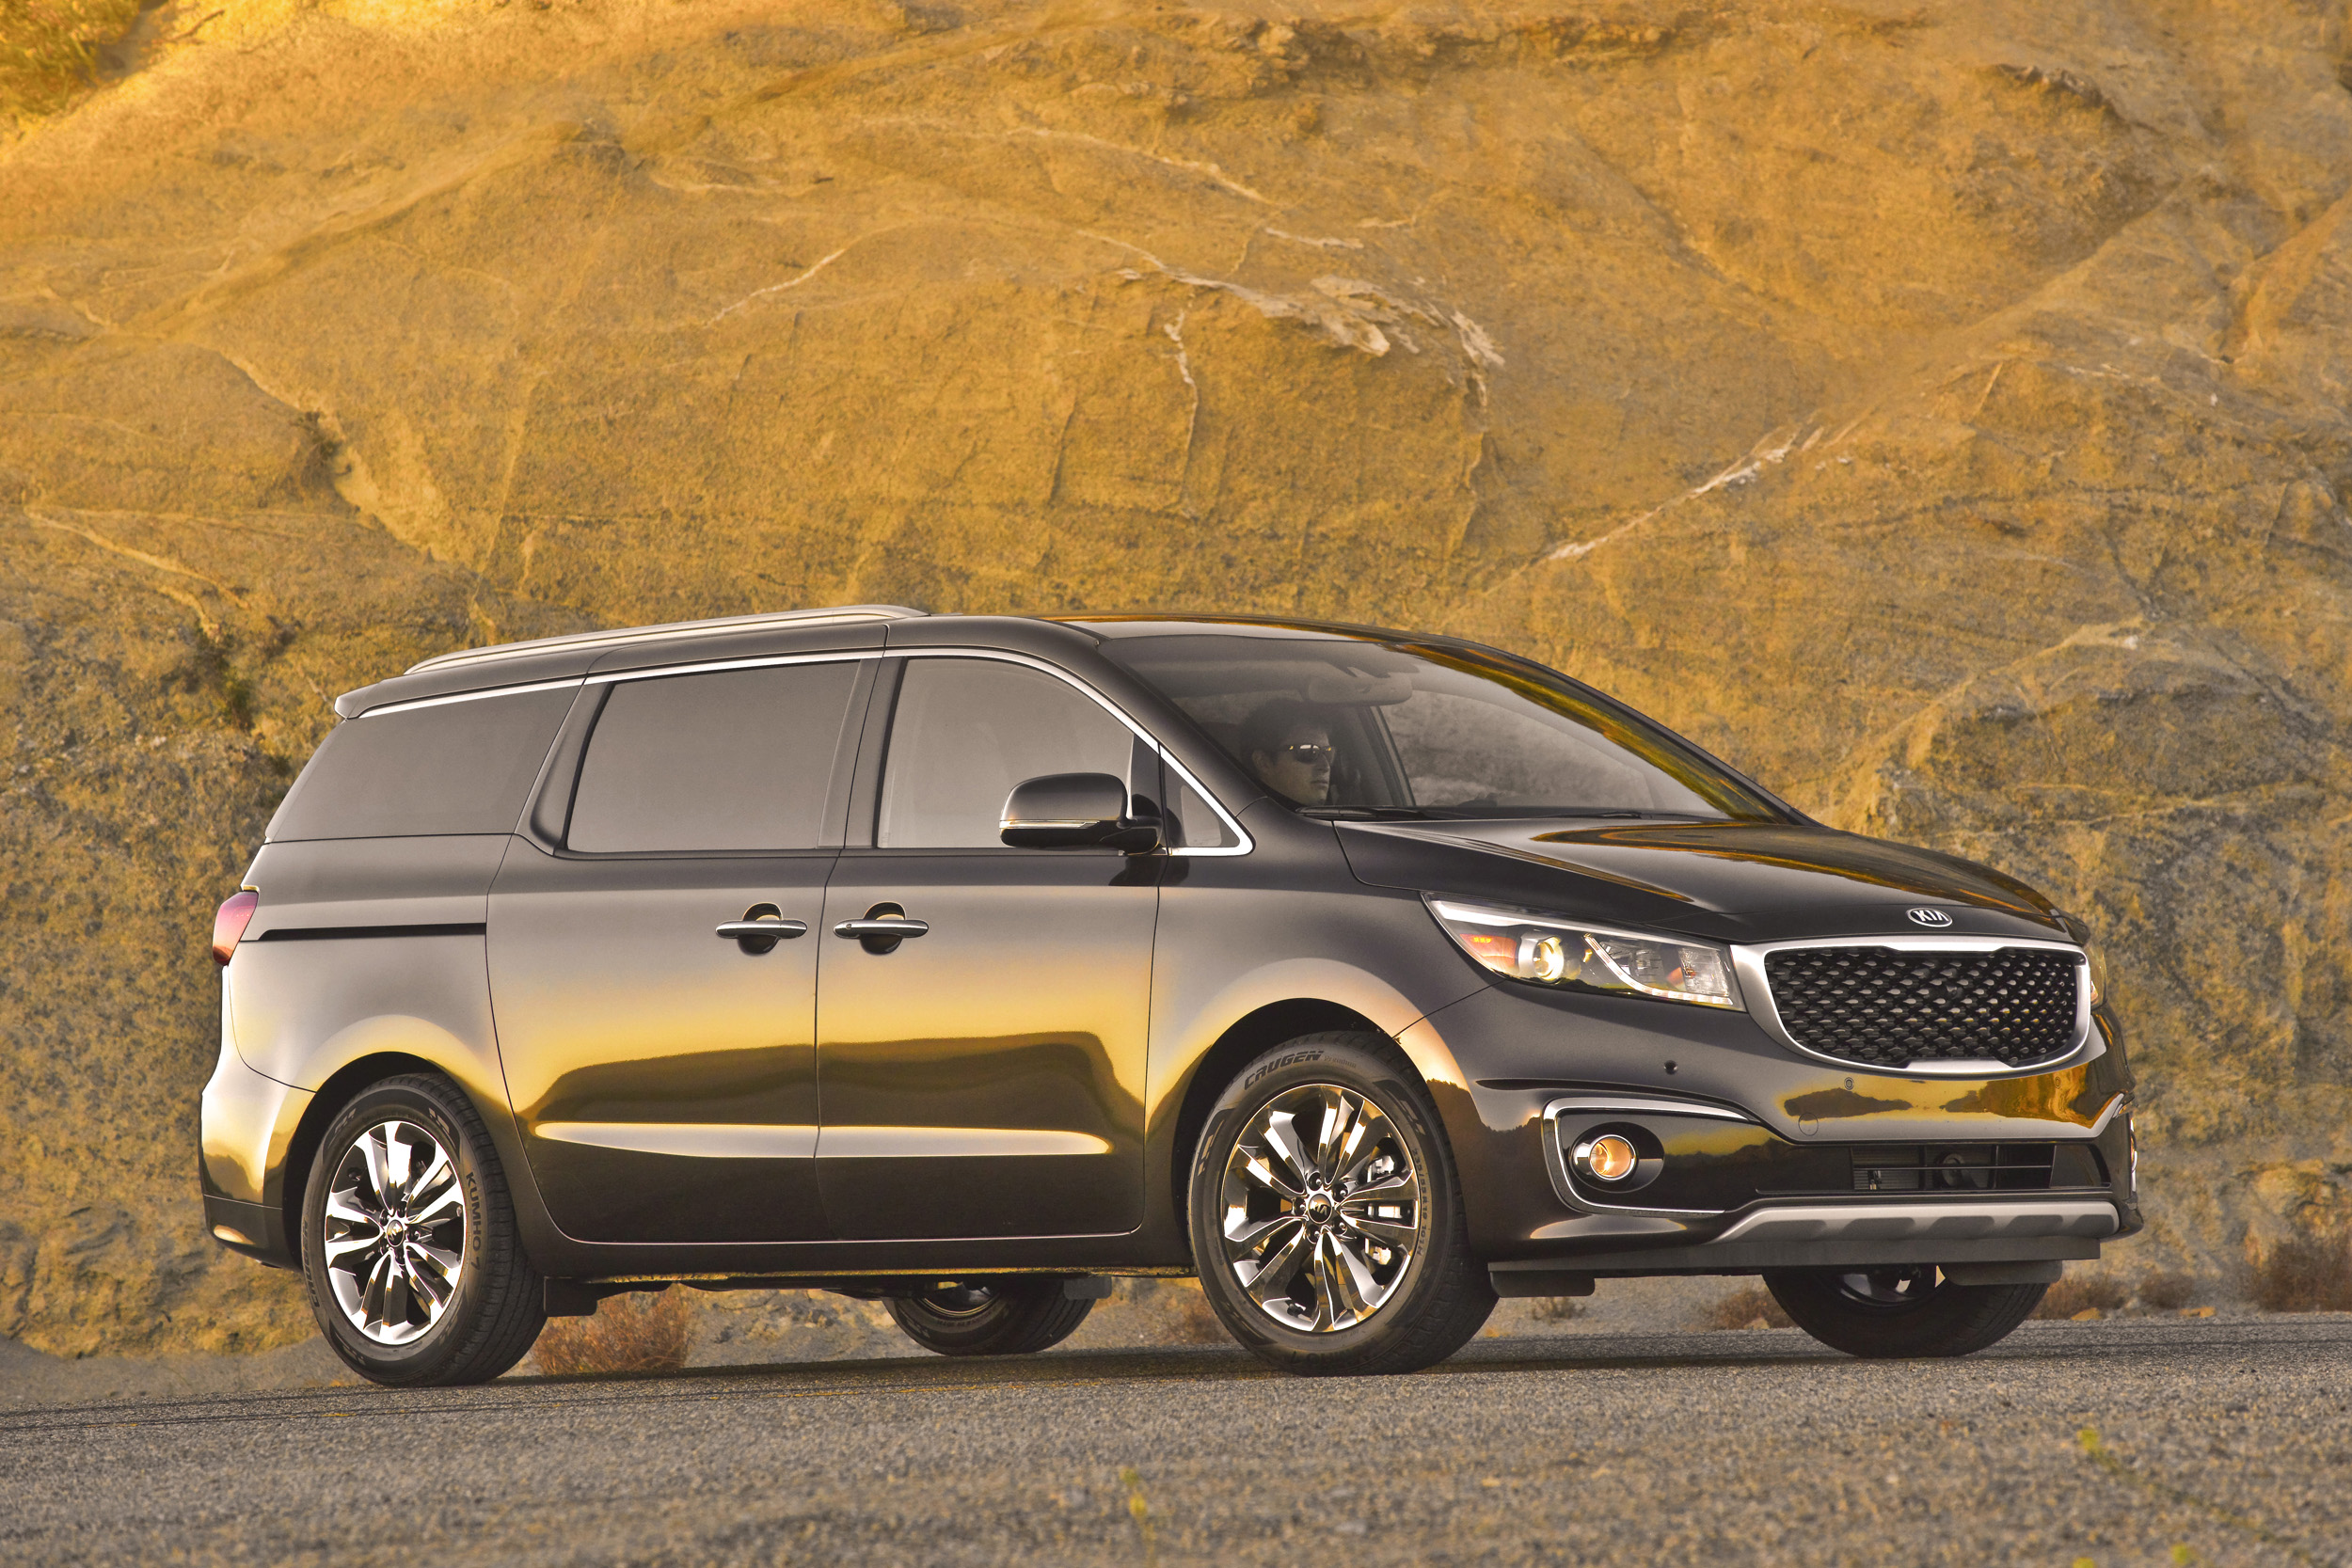 kia sliding camping open sedona not rave adventure your doors ex grandmas minivan review our